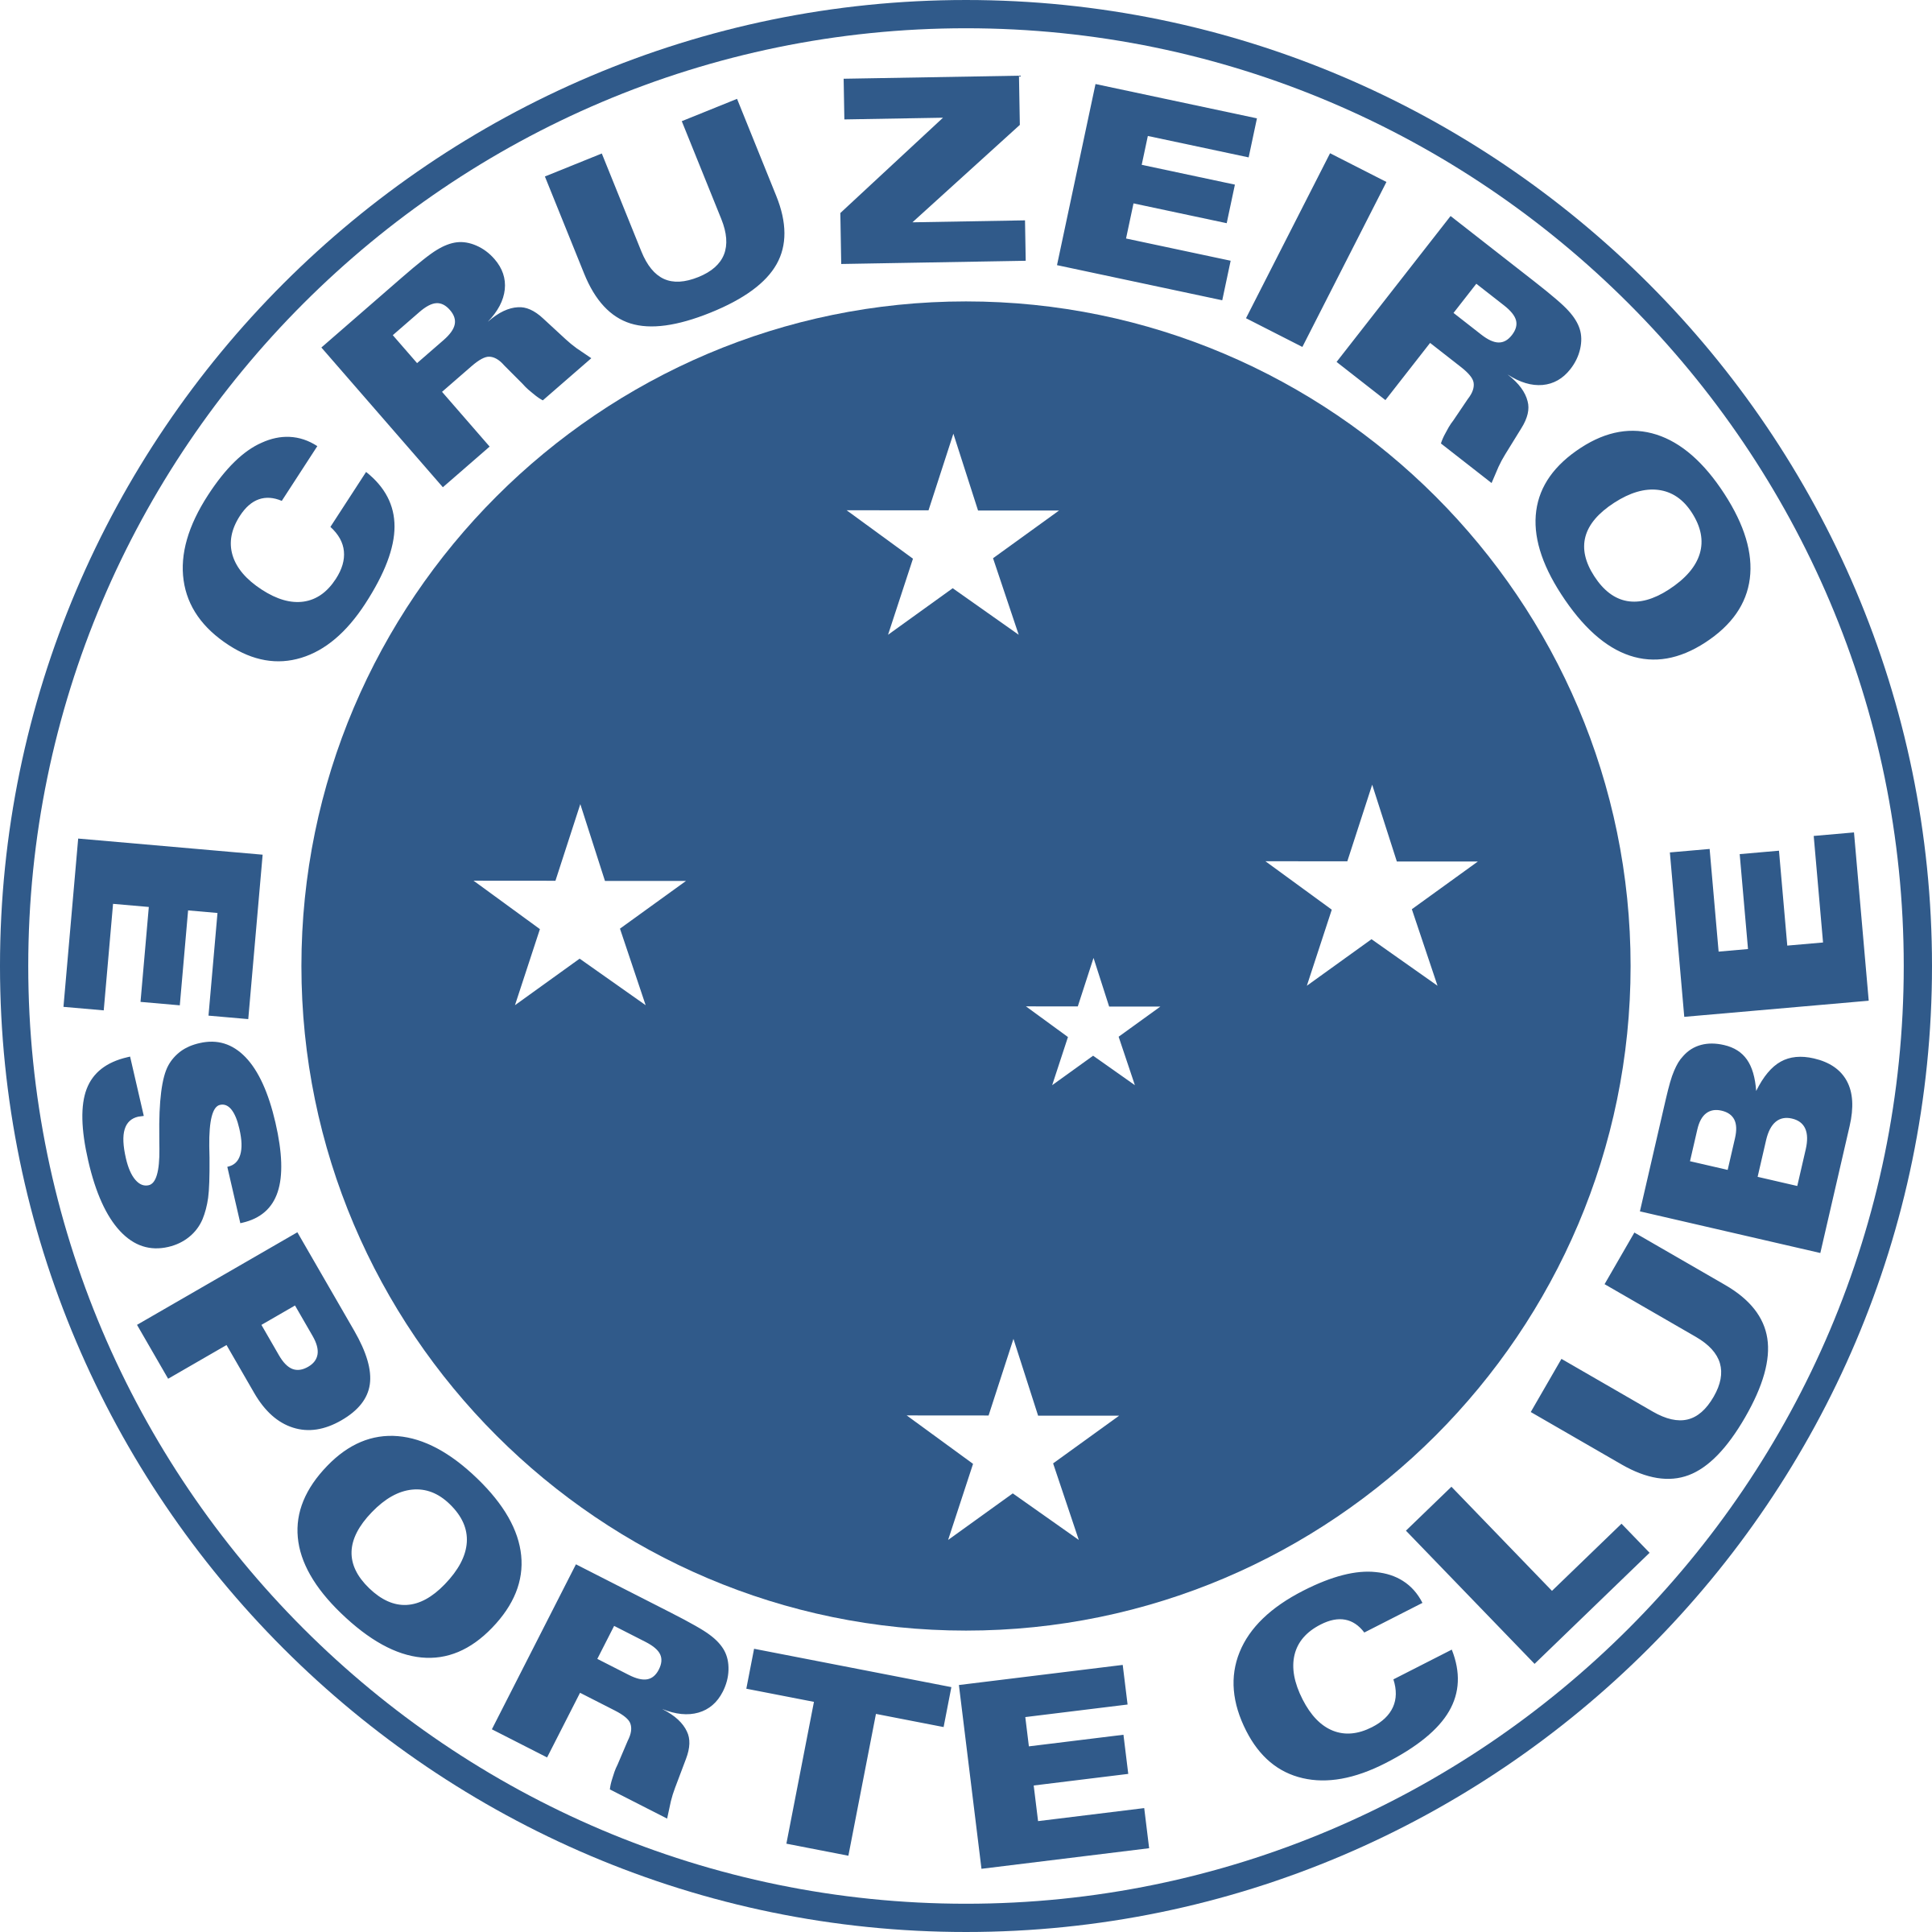 Cruzeiro Logo PNG Transparent & SVG Vector.